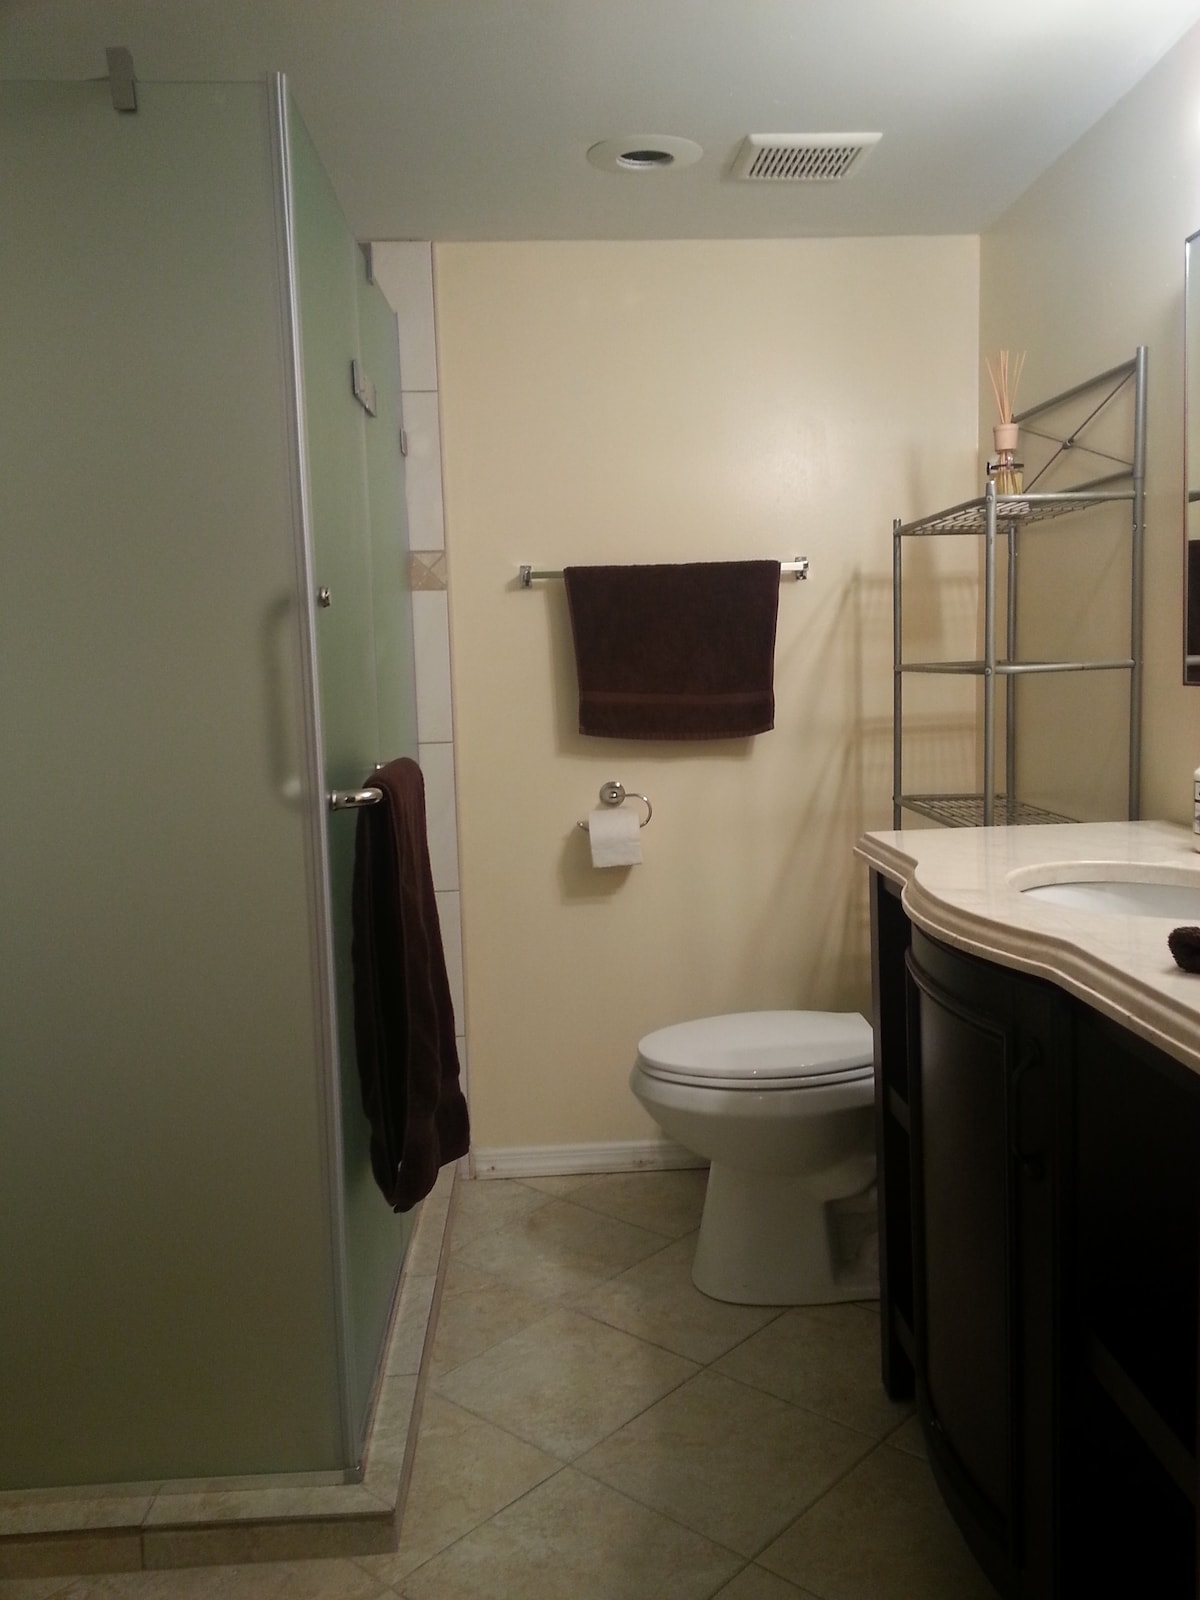 Huge BR (2 Beds) + Private Full BA